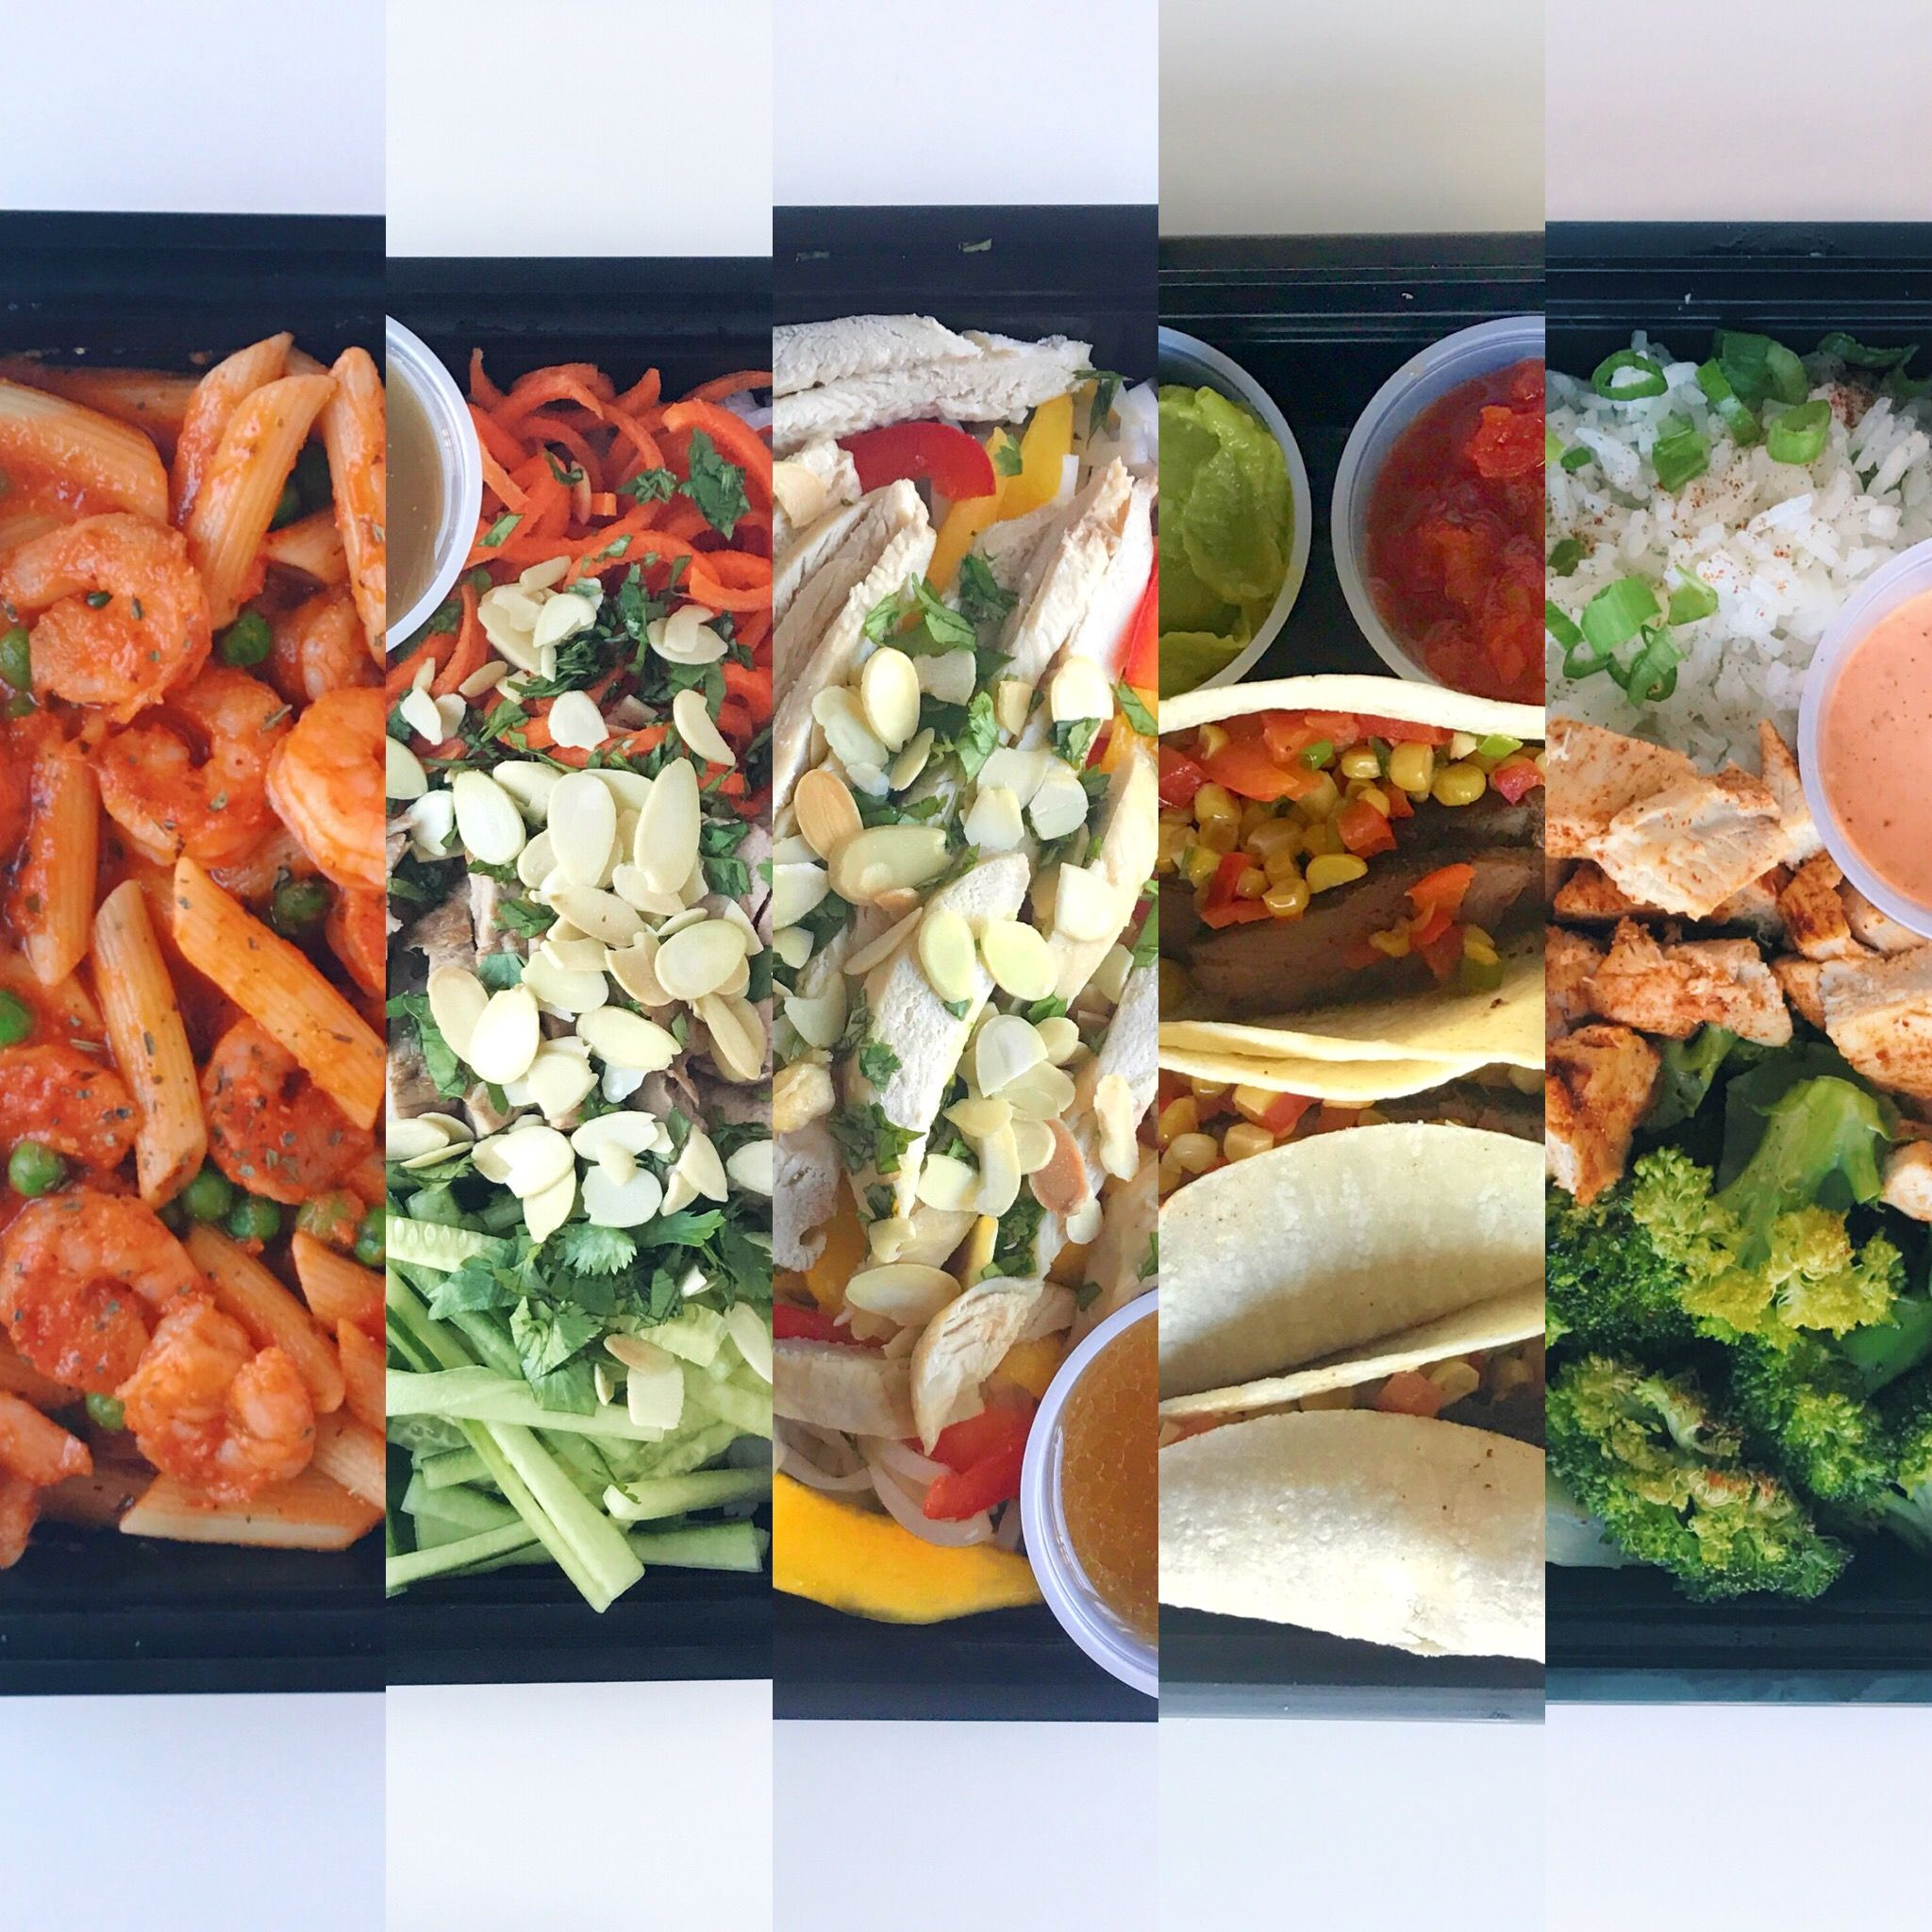 10 Meal Vegetarian Pescetarian Meal Package High protein